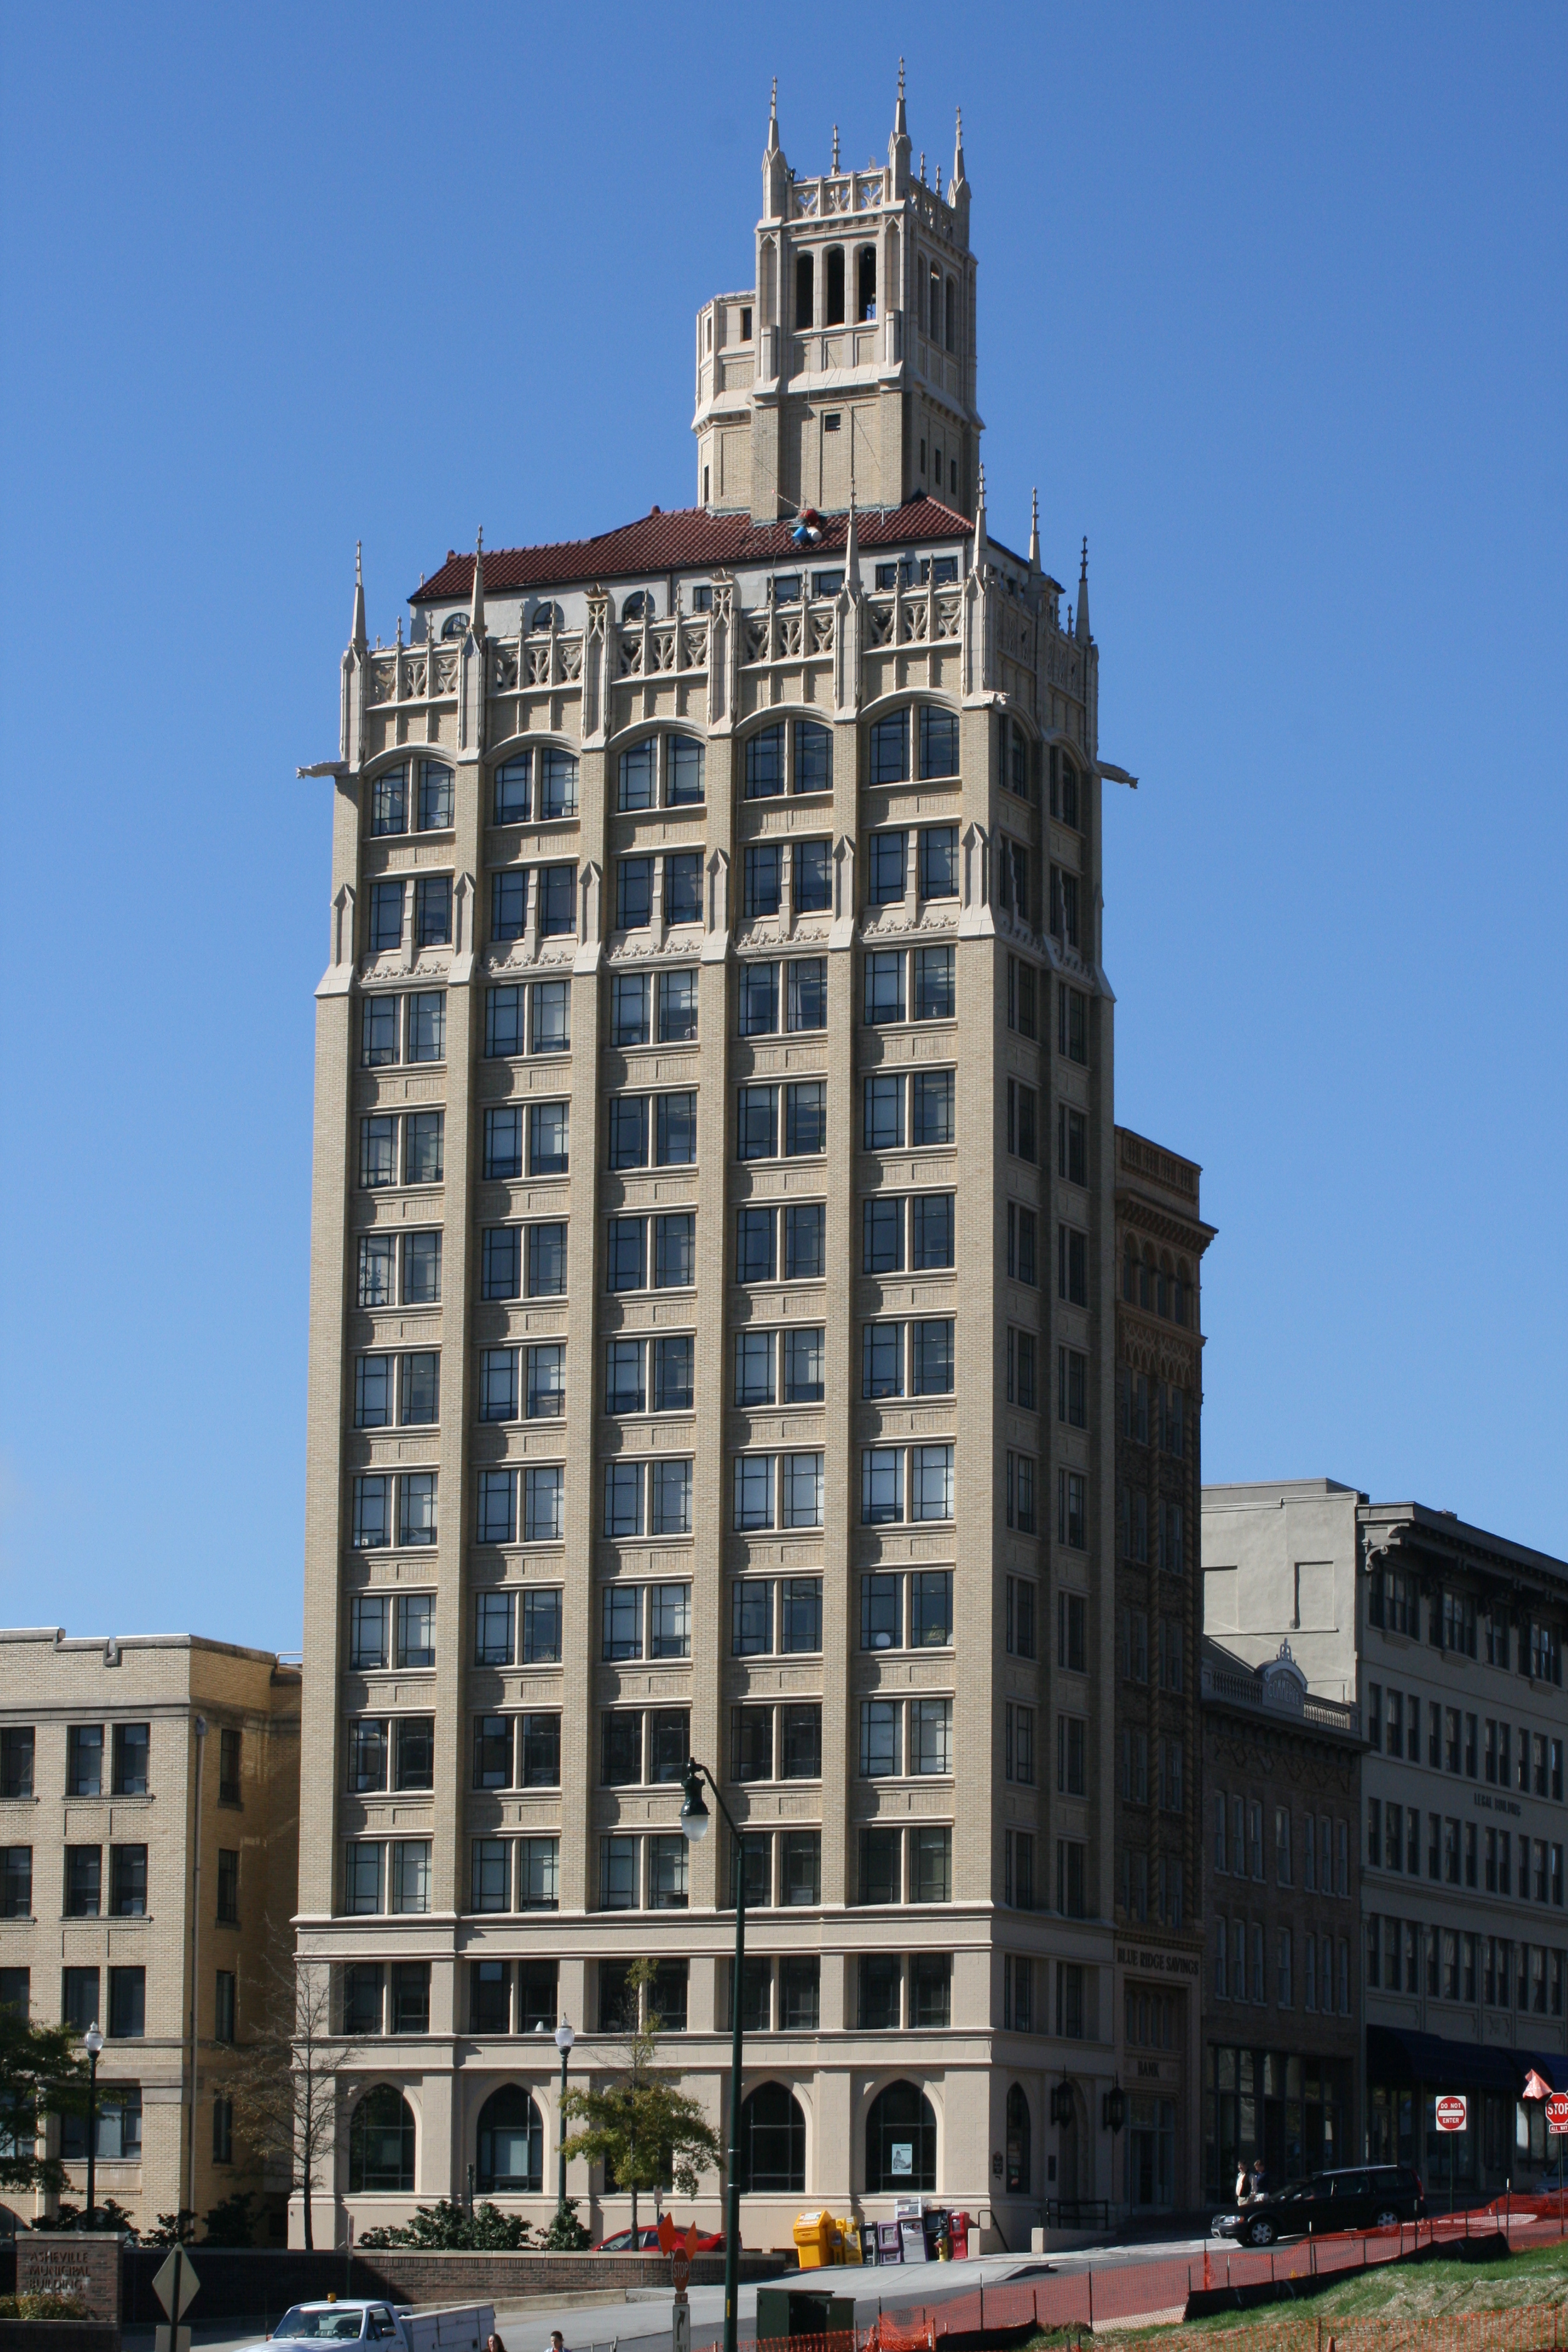 Jackson Building - Asheville, NC - Built in 1924 - 15 Stories - Neo-Gothic Style - Commercial Office Use